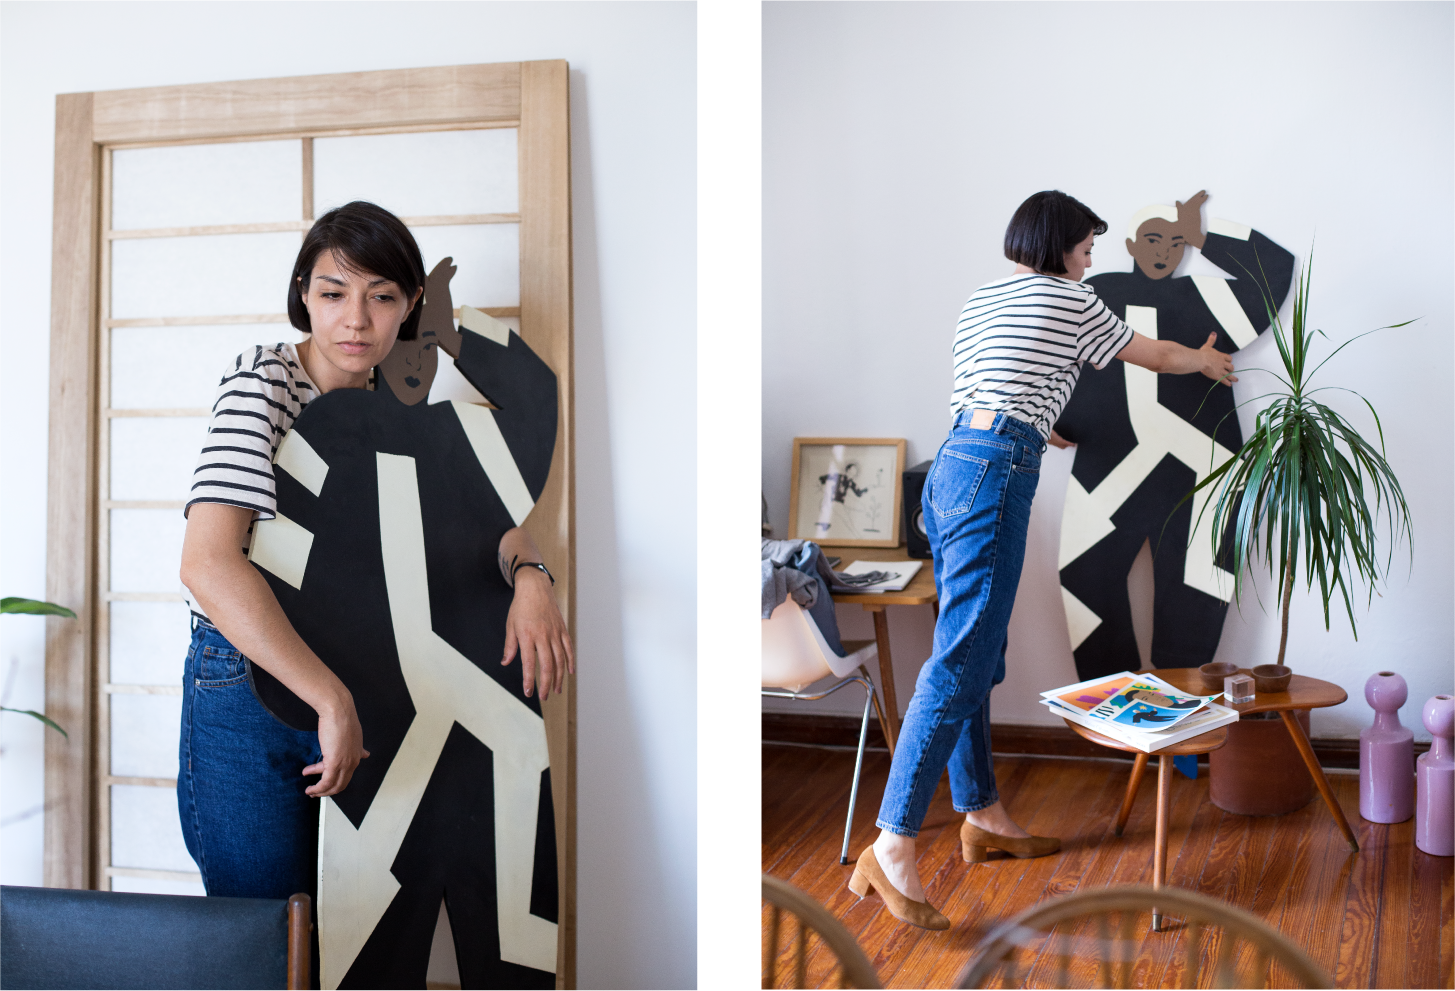 Left: Daiana with a life-sized version of one of her illustrations from a past show. Right: Daiana rearranging objects in a simply decorated corner of her loft apartment wearing the ZX Belu Pump from a past season.